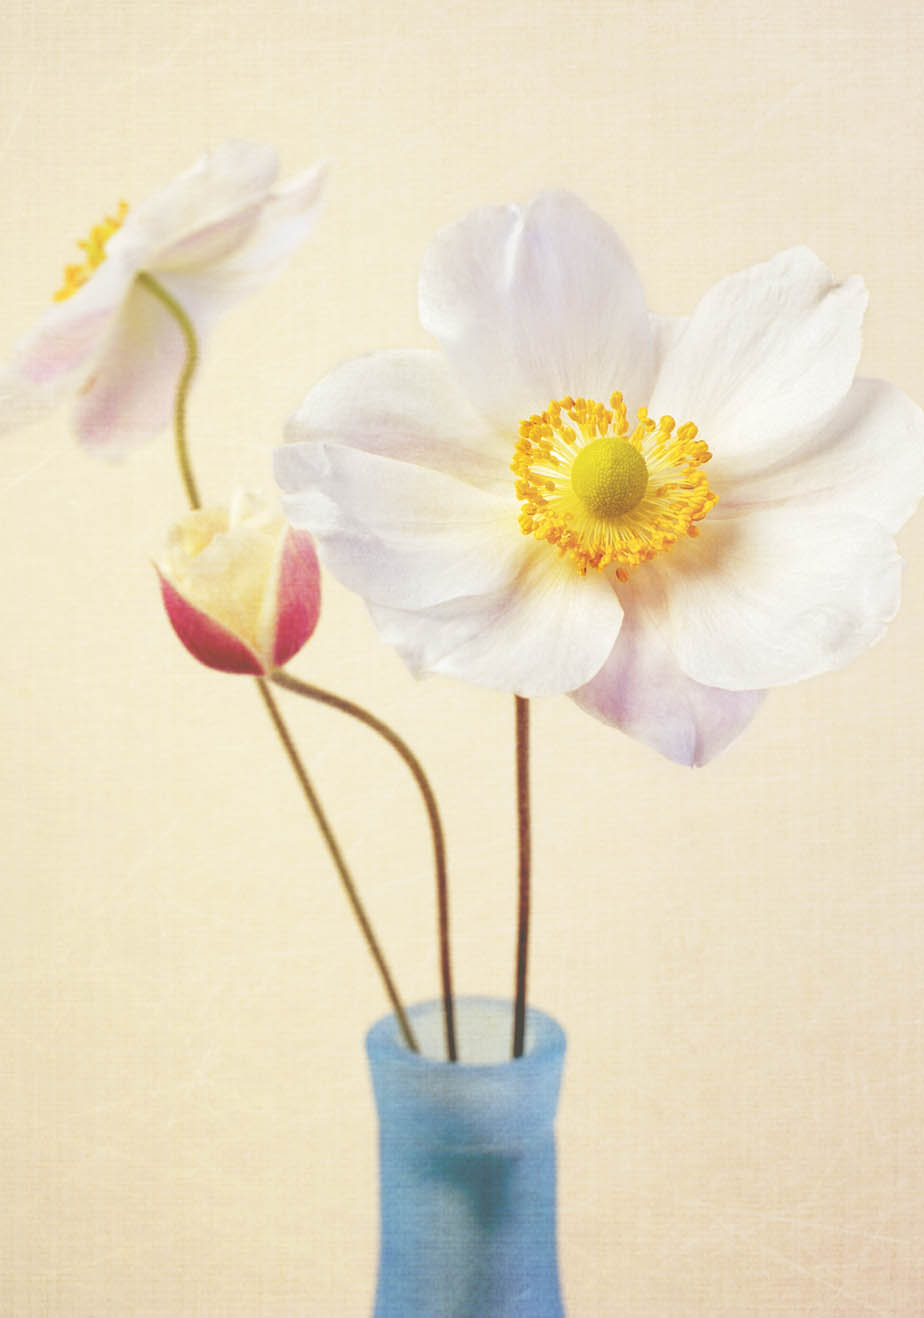 Two white Japanese anemones in a bottle.